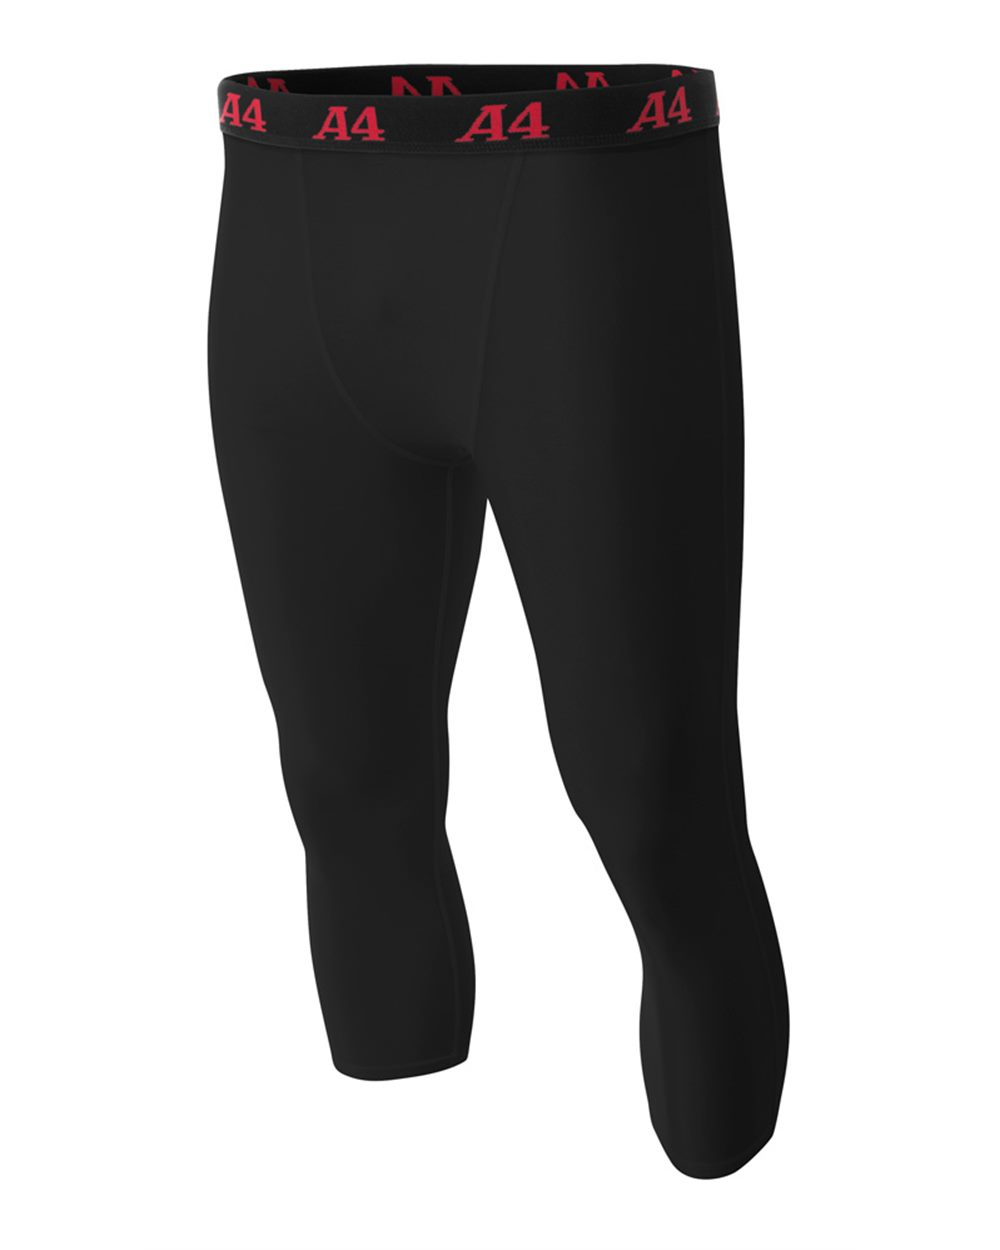 A4 Compression Tight